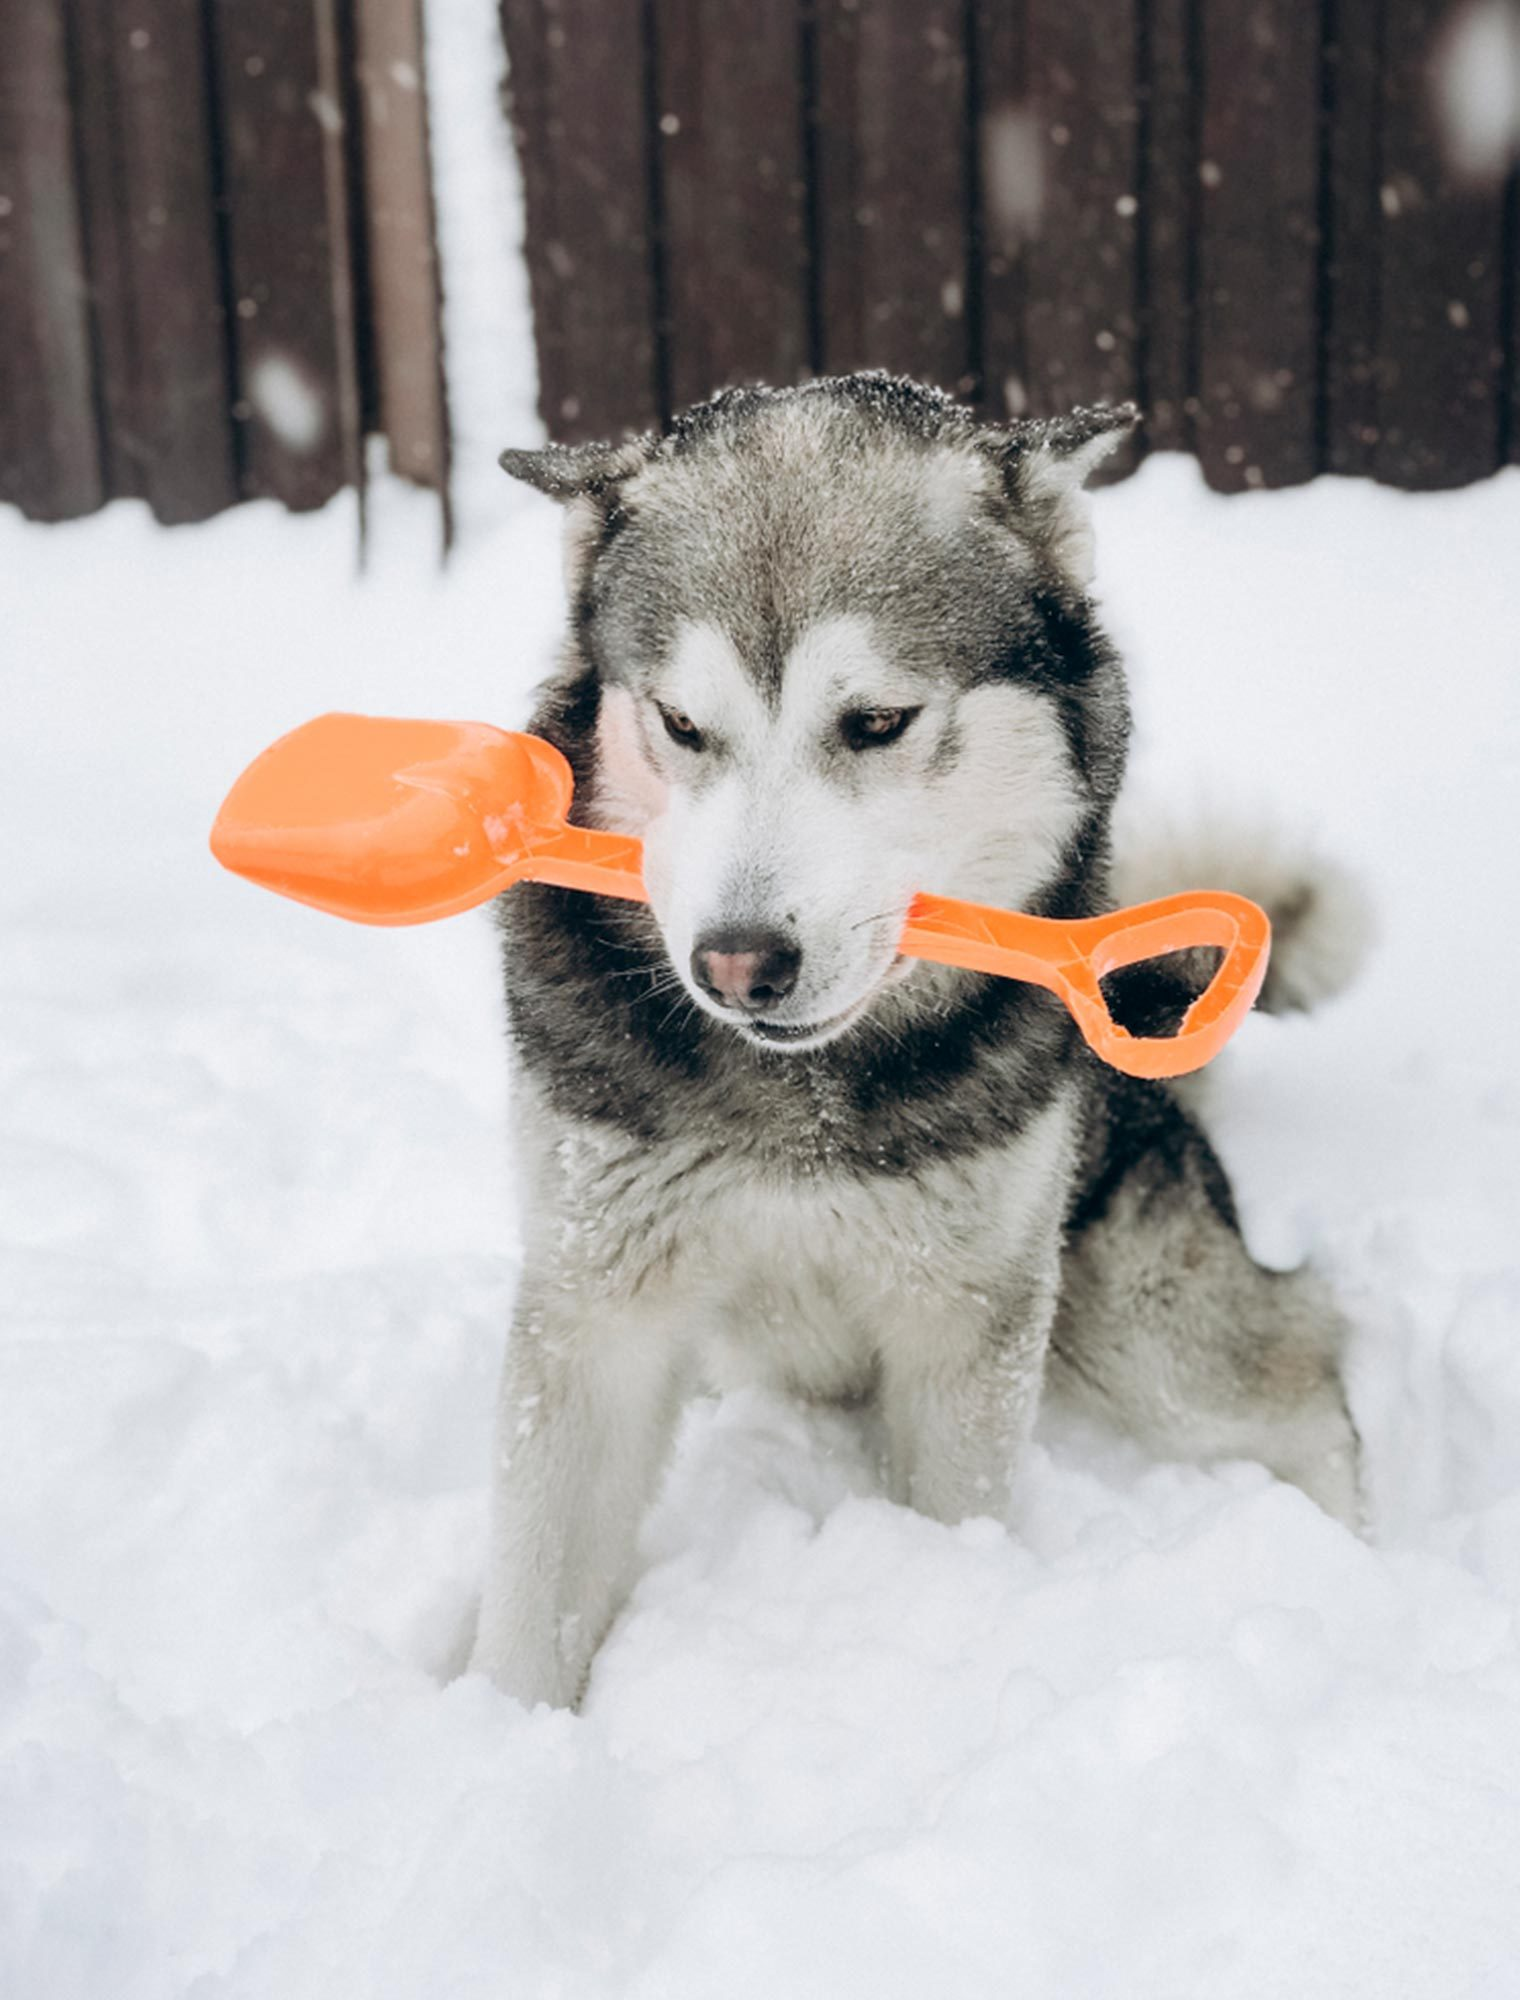 Husky dog in snow